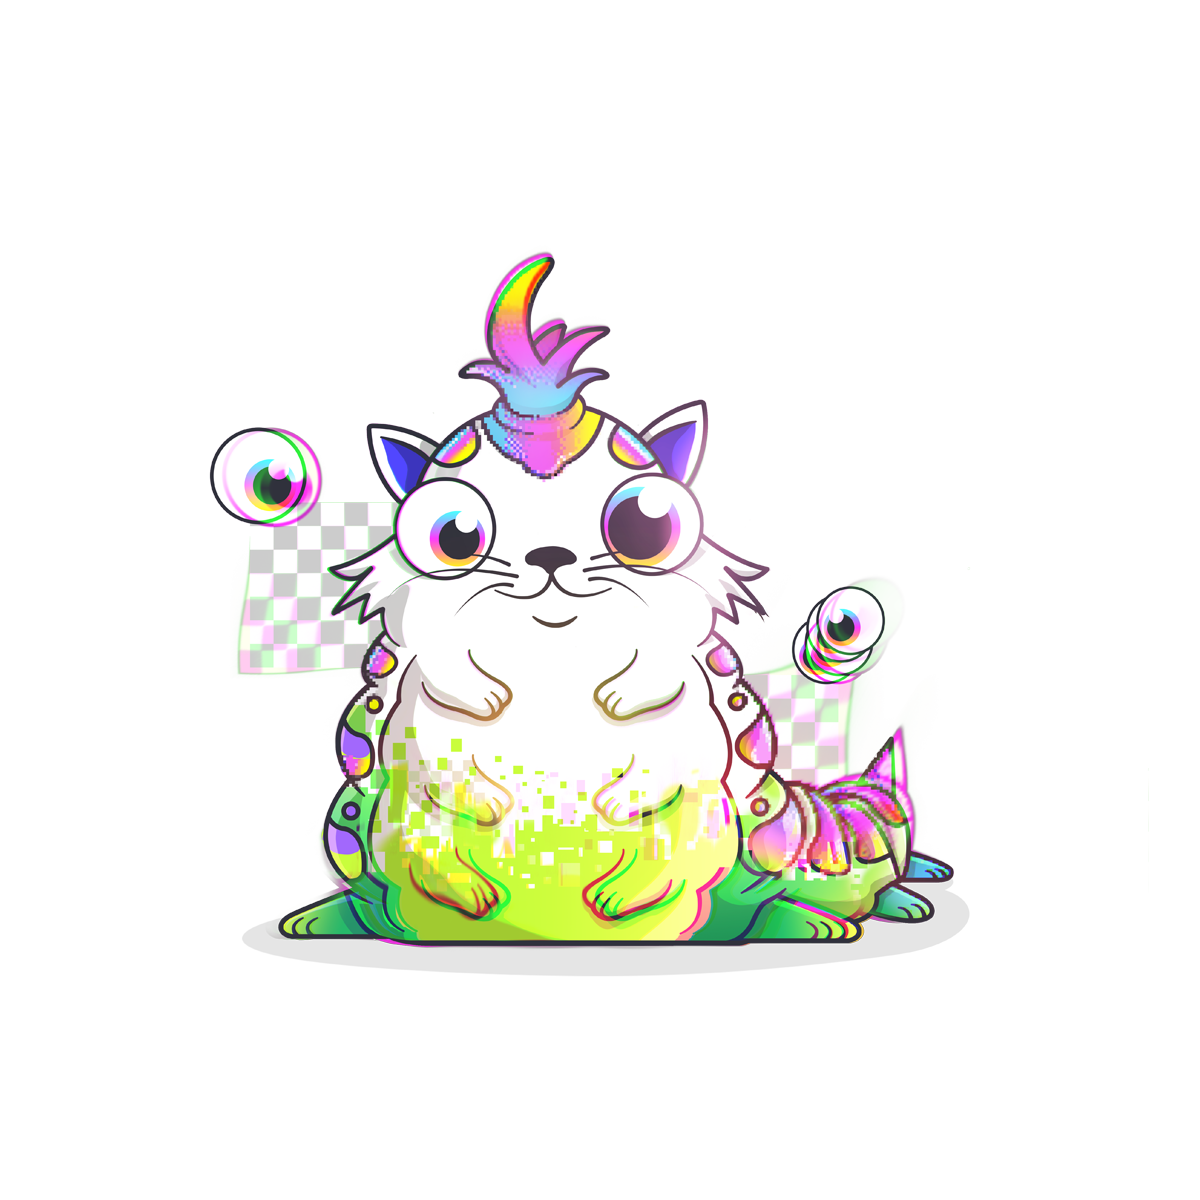 cryptokitty #168